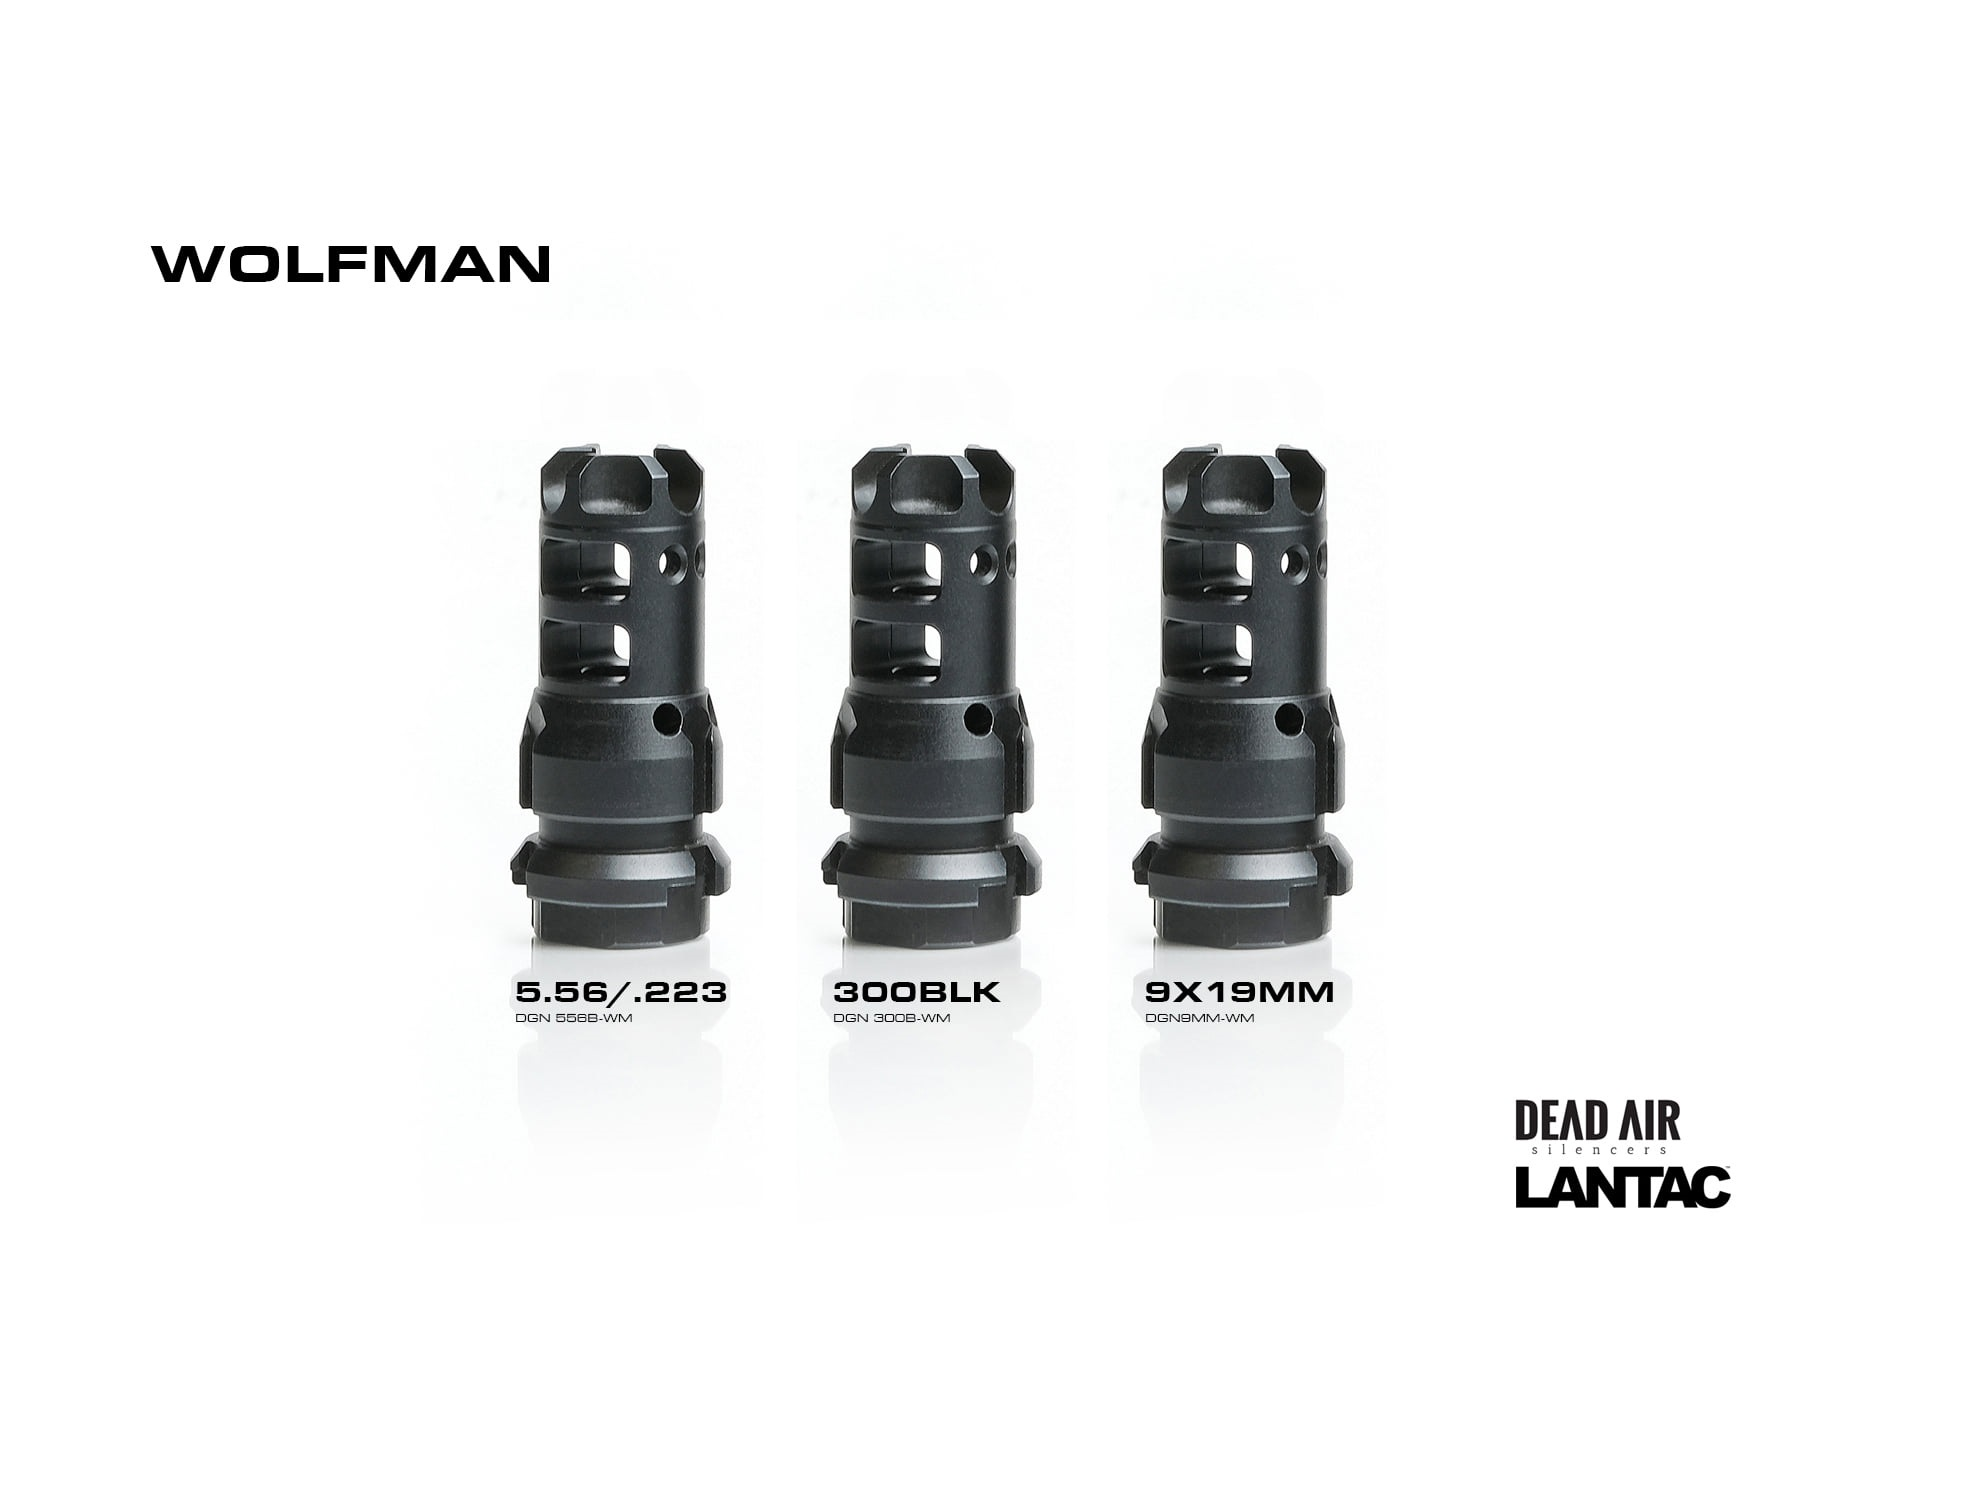 LANTAC USA EXPANDS SUPPORT FOR DEAD AIR SILENCERS WITH NEW KEYMO WOLFMAN DRAGON MUZZLE BRAKES